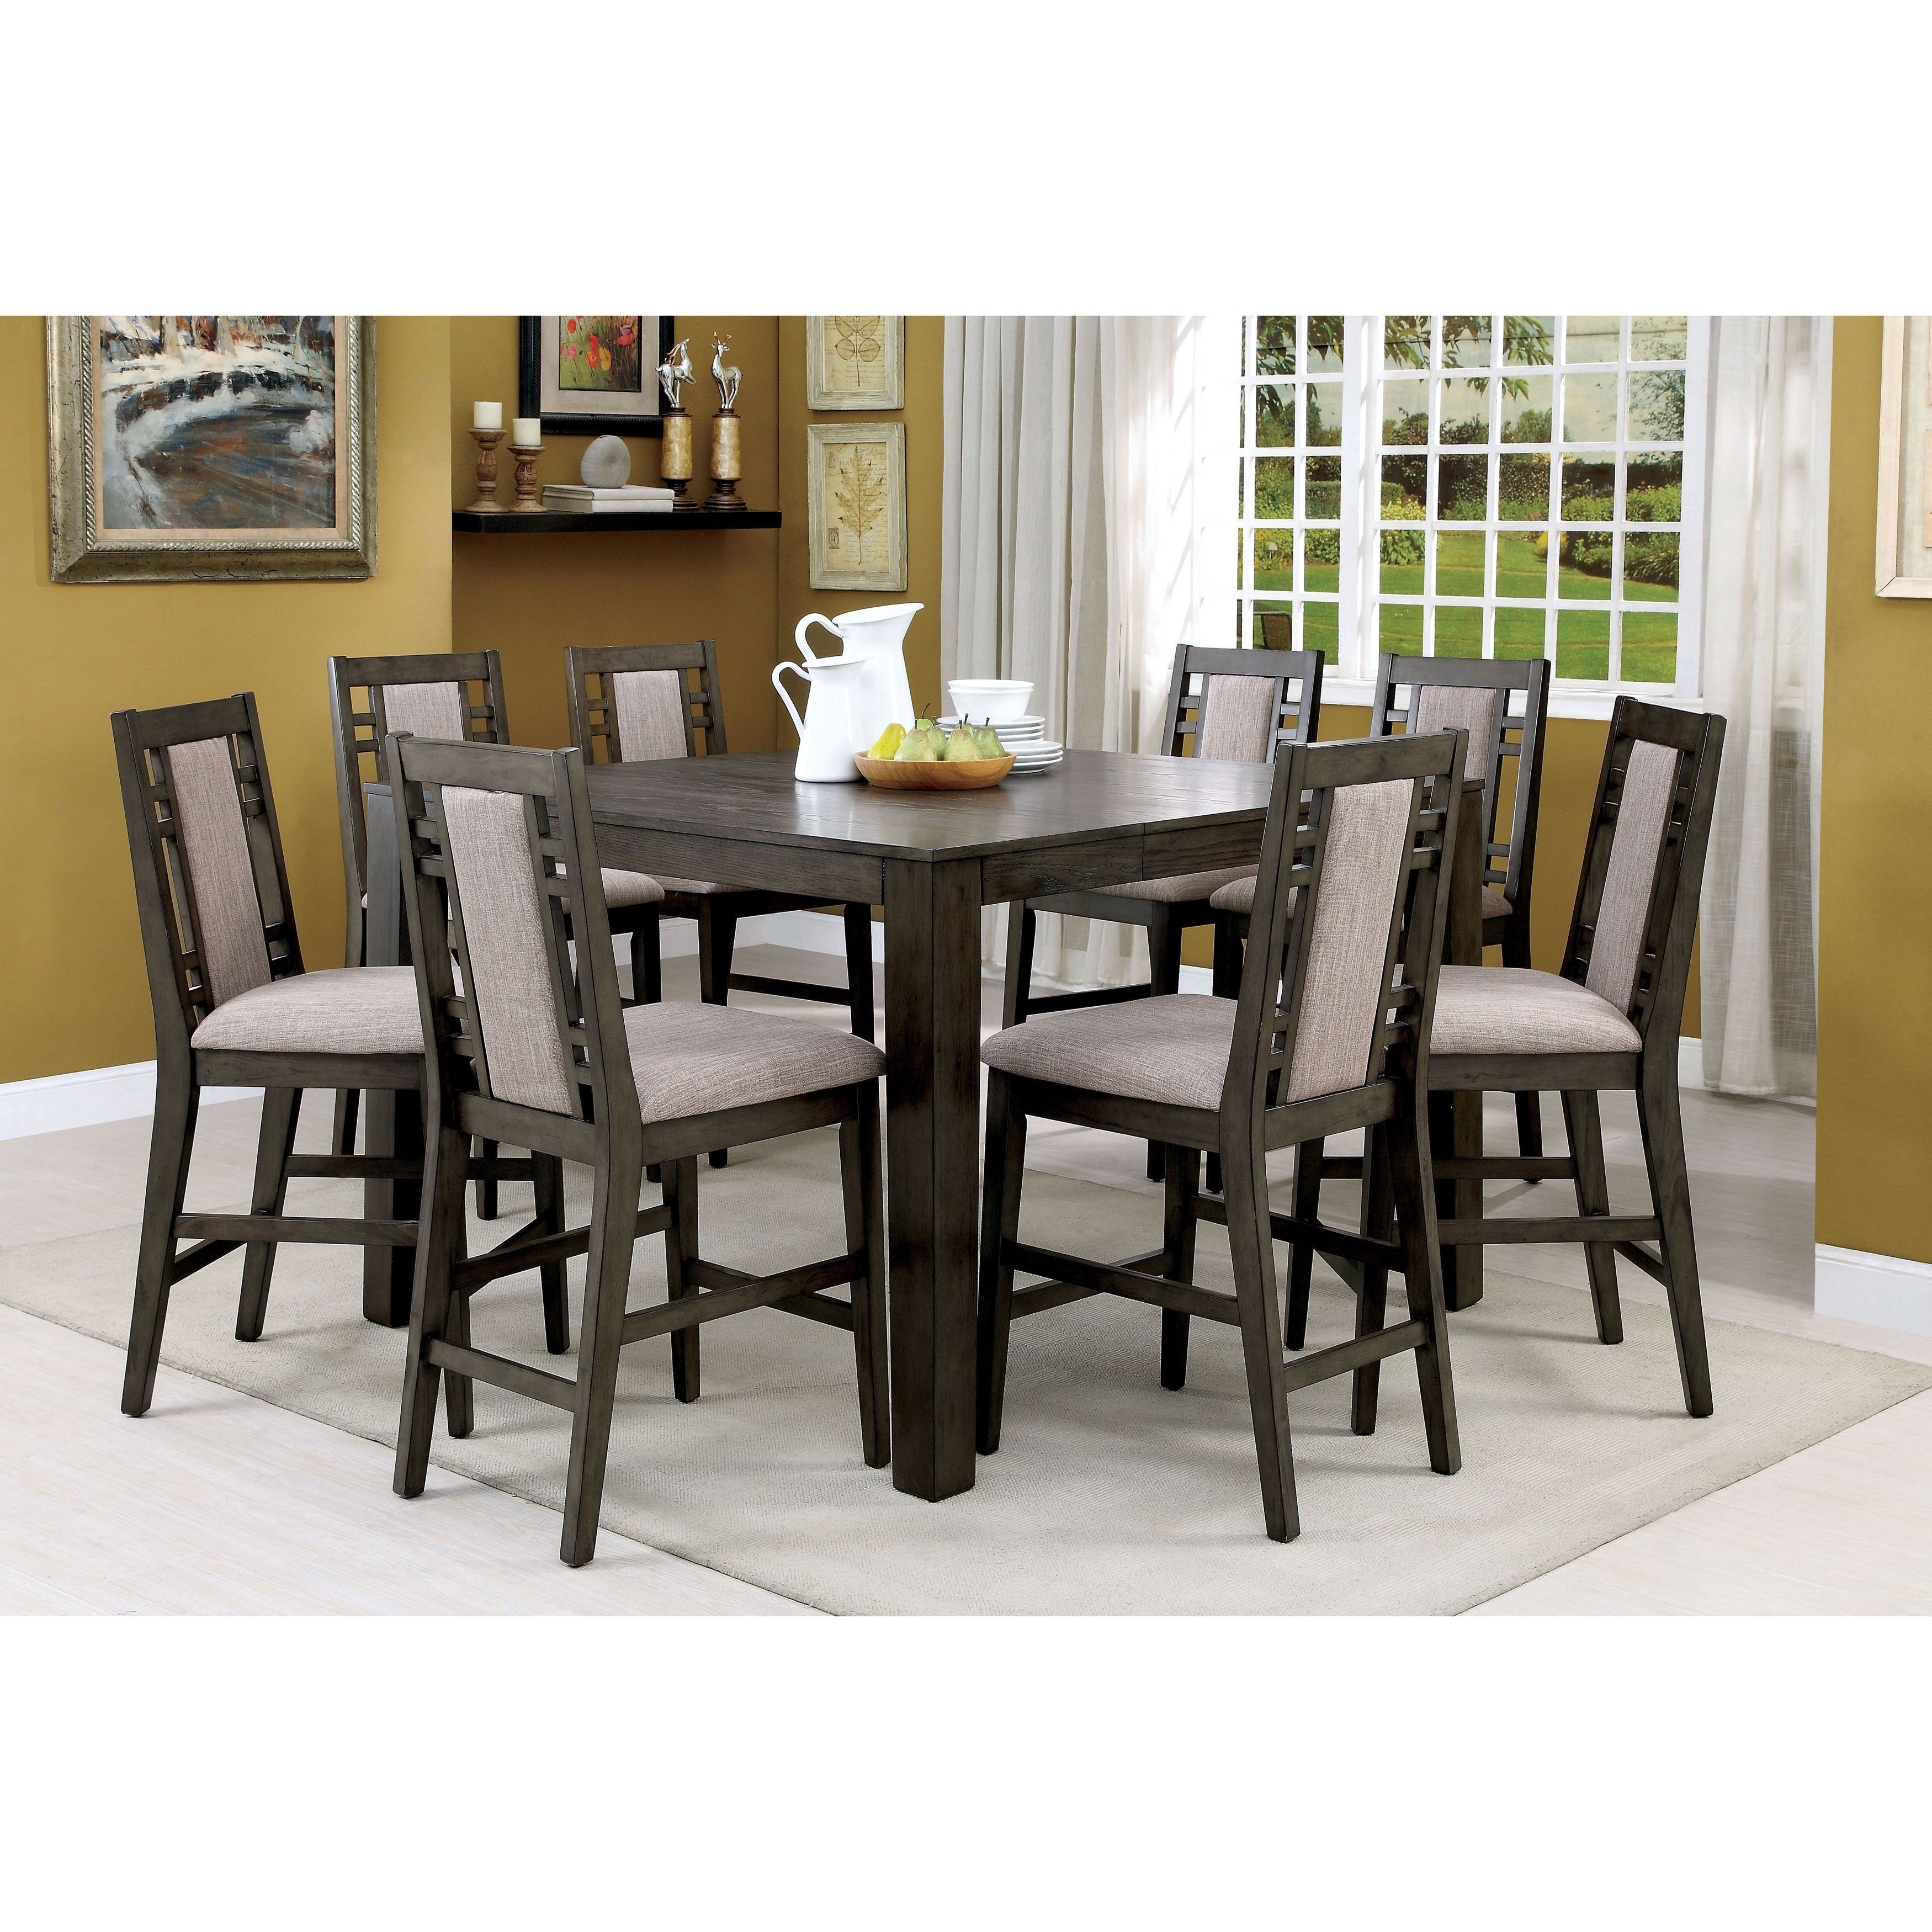 Furniture Of America Basson Rustic 9 Piece Expandable Counter Height Dining  Set